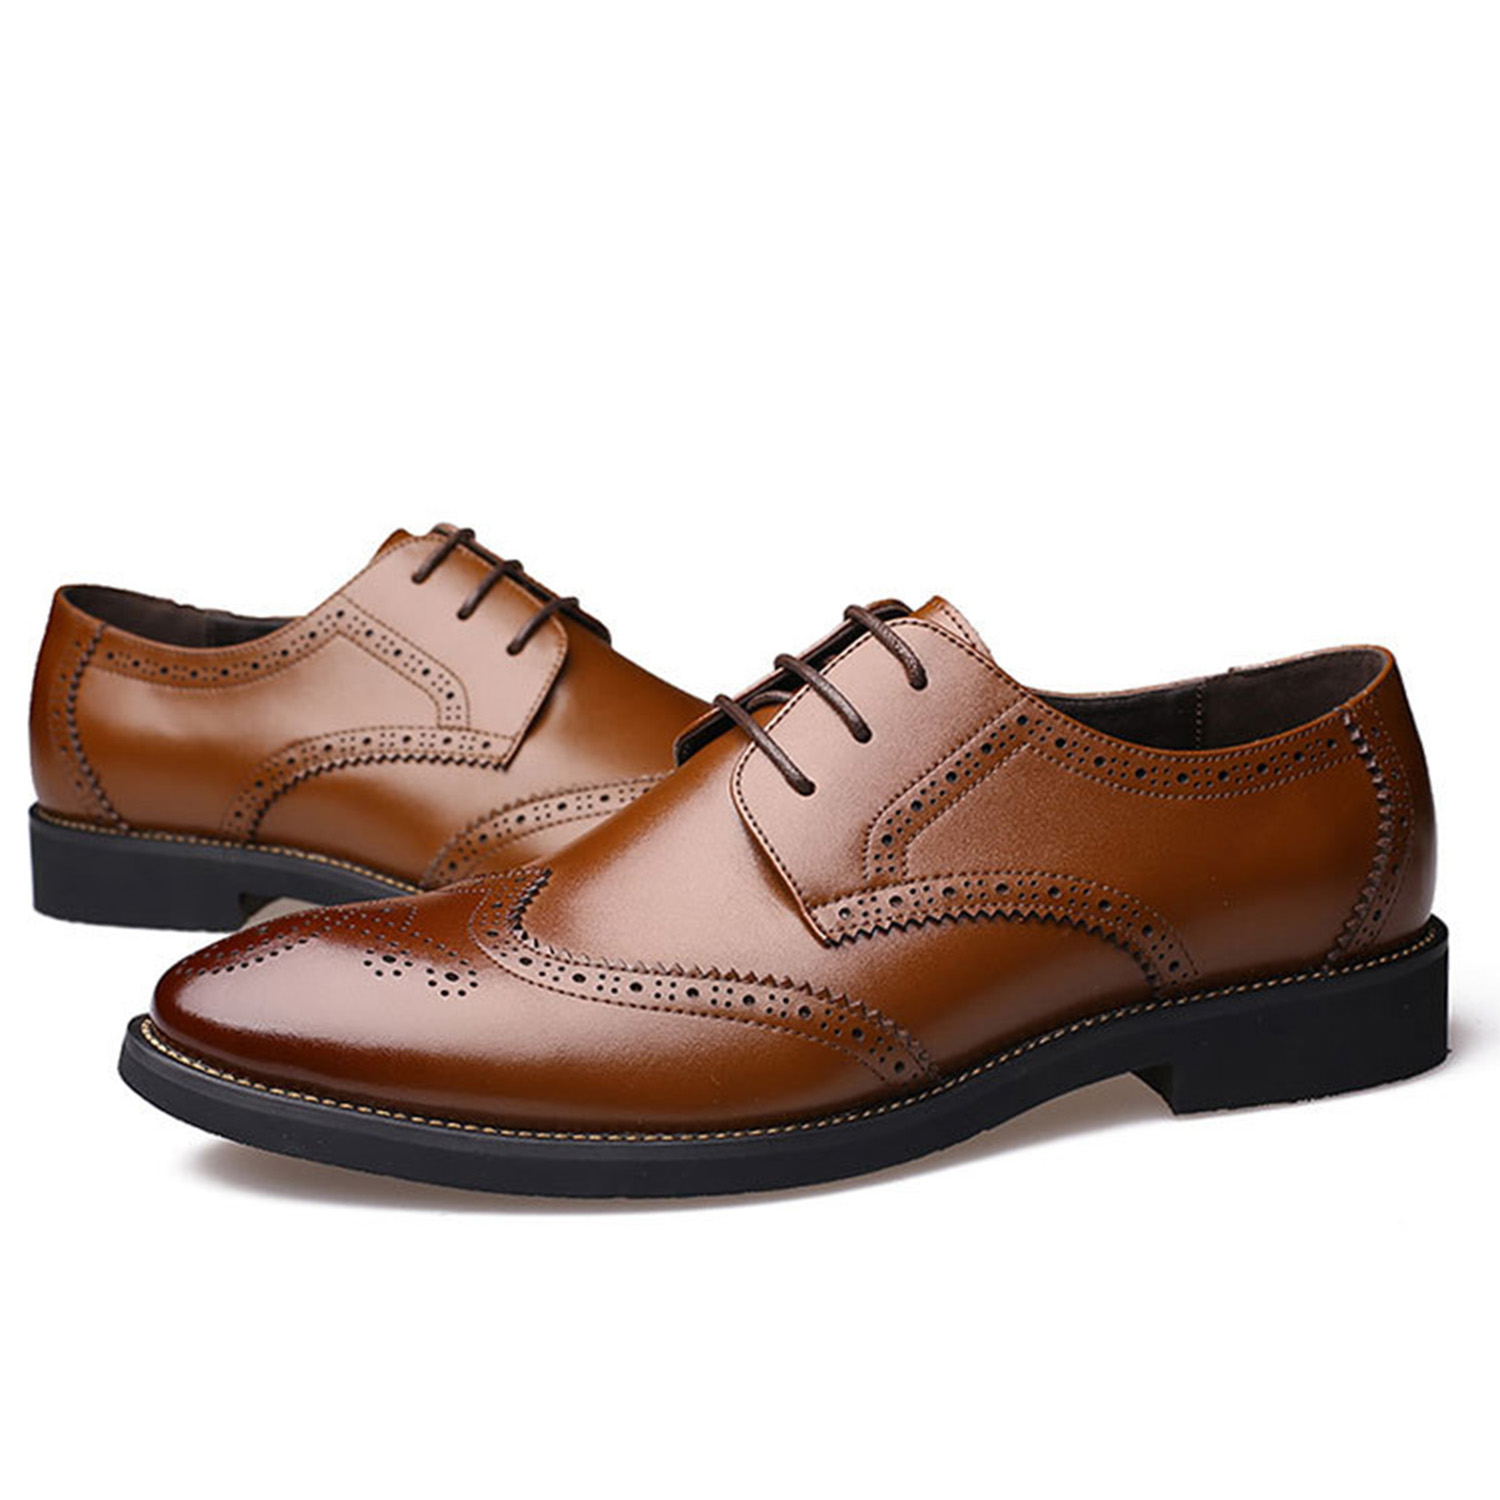 Luxury Design Oxford Business Men Shoes Genuine Leather High Quality - Men's Shoes - Photo 3